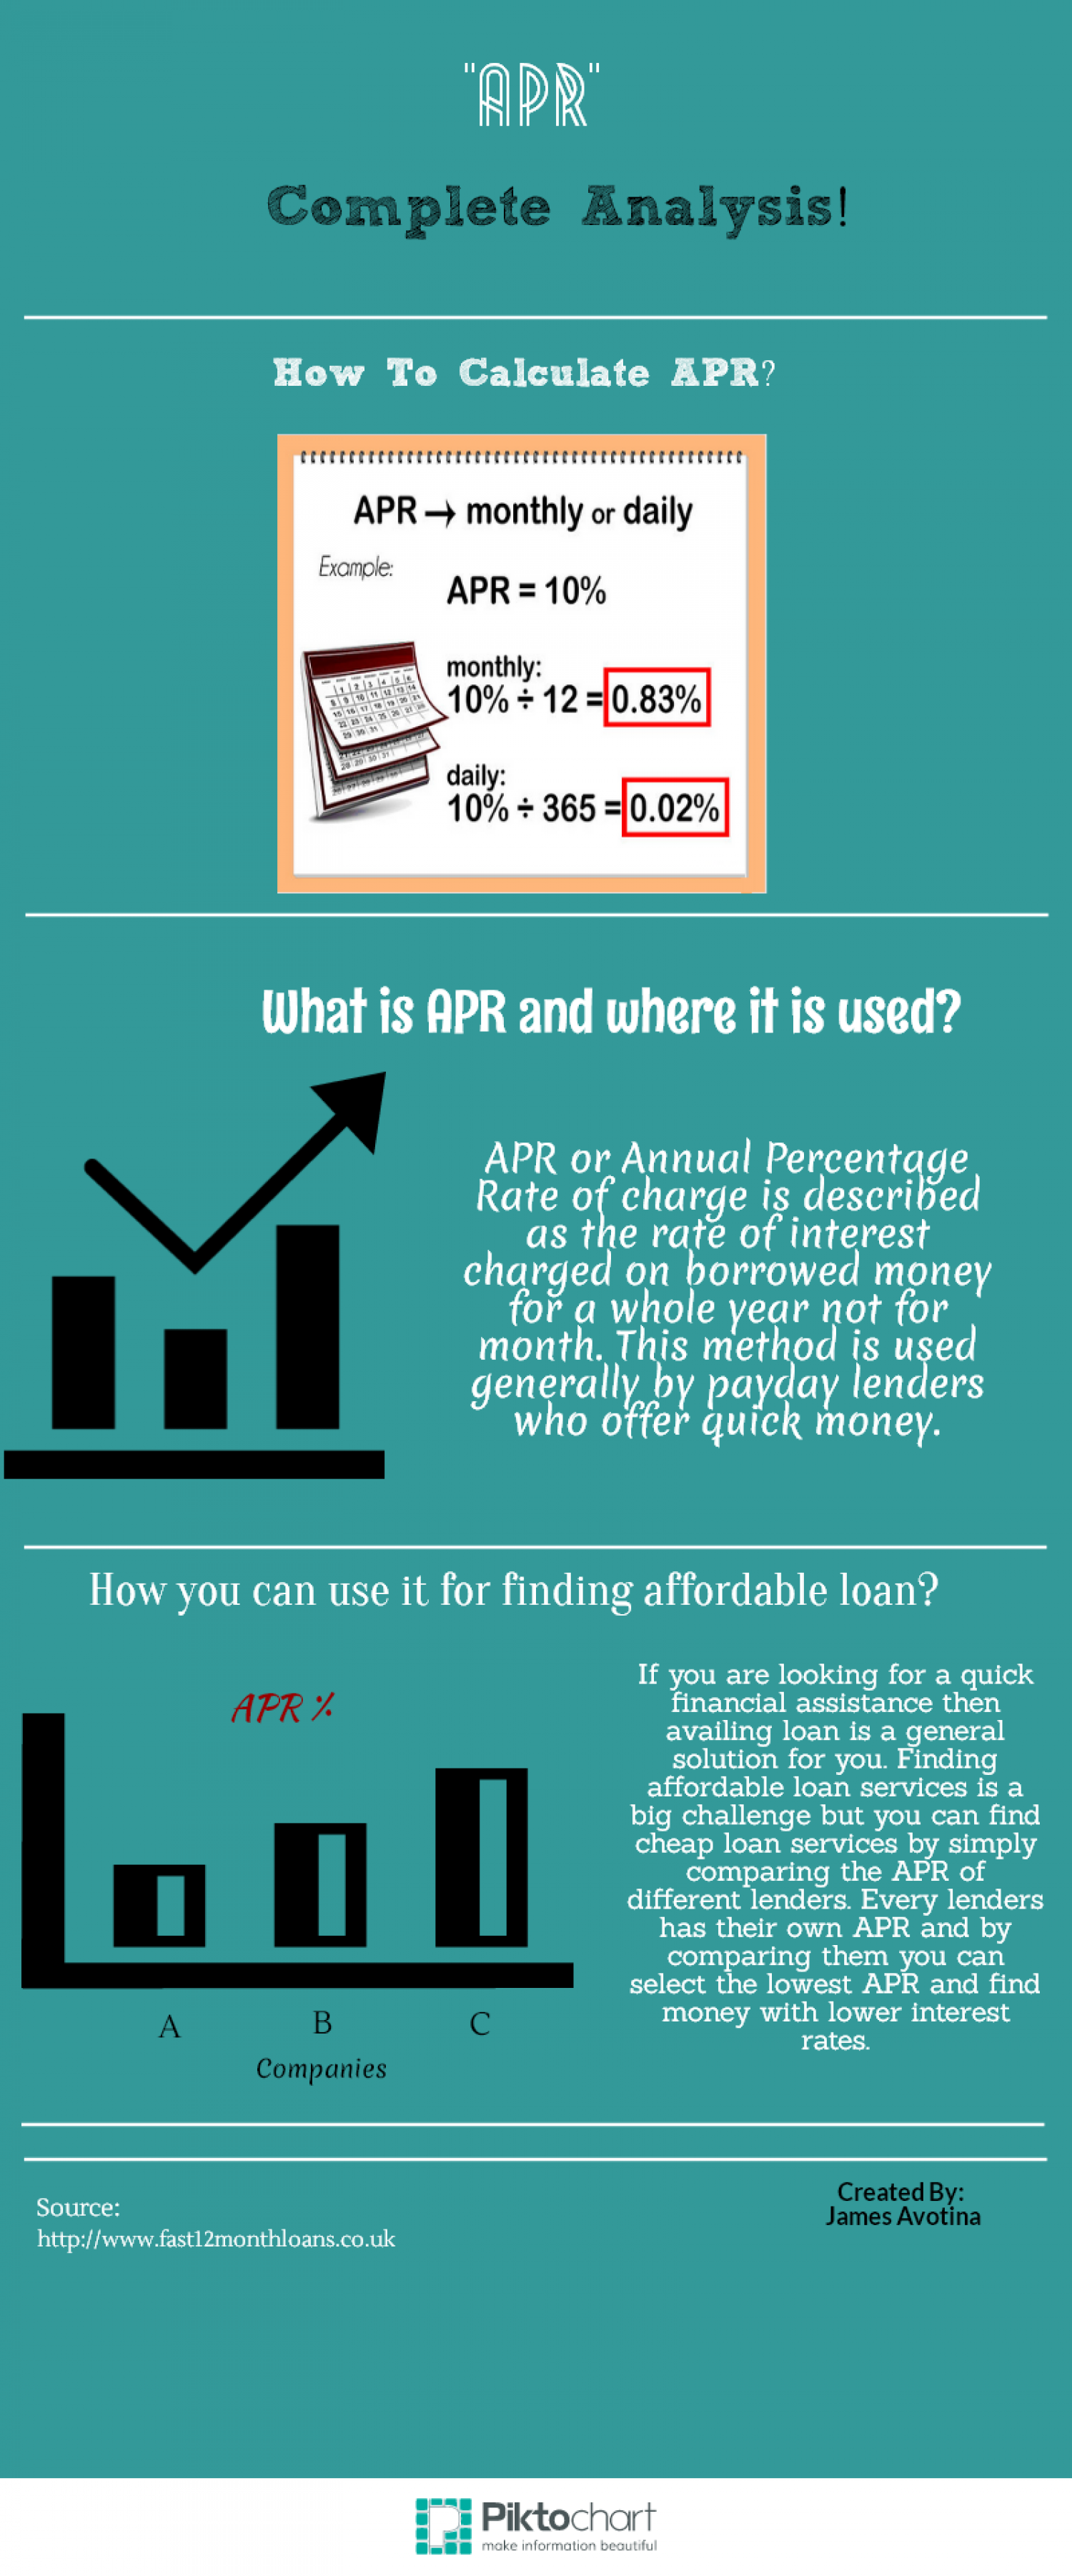 Helpful Guide for People Needing More Details about APR! Infographic